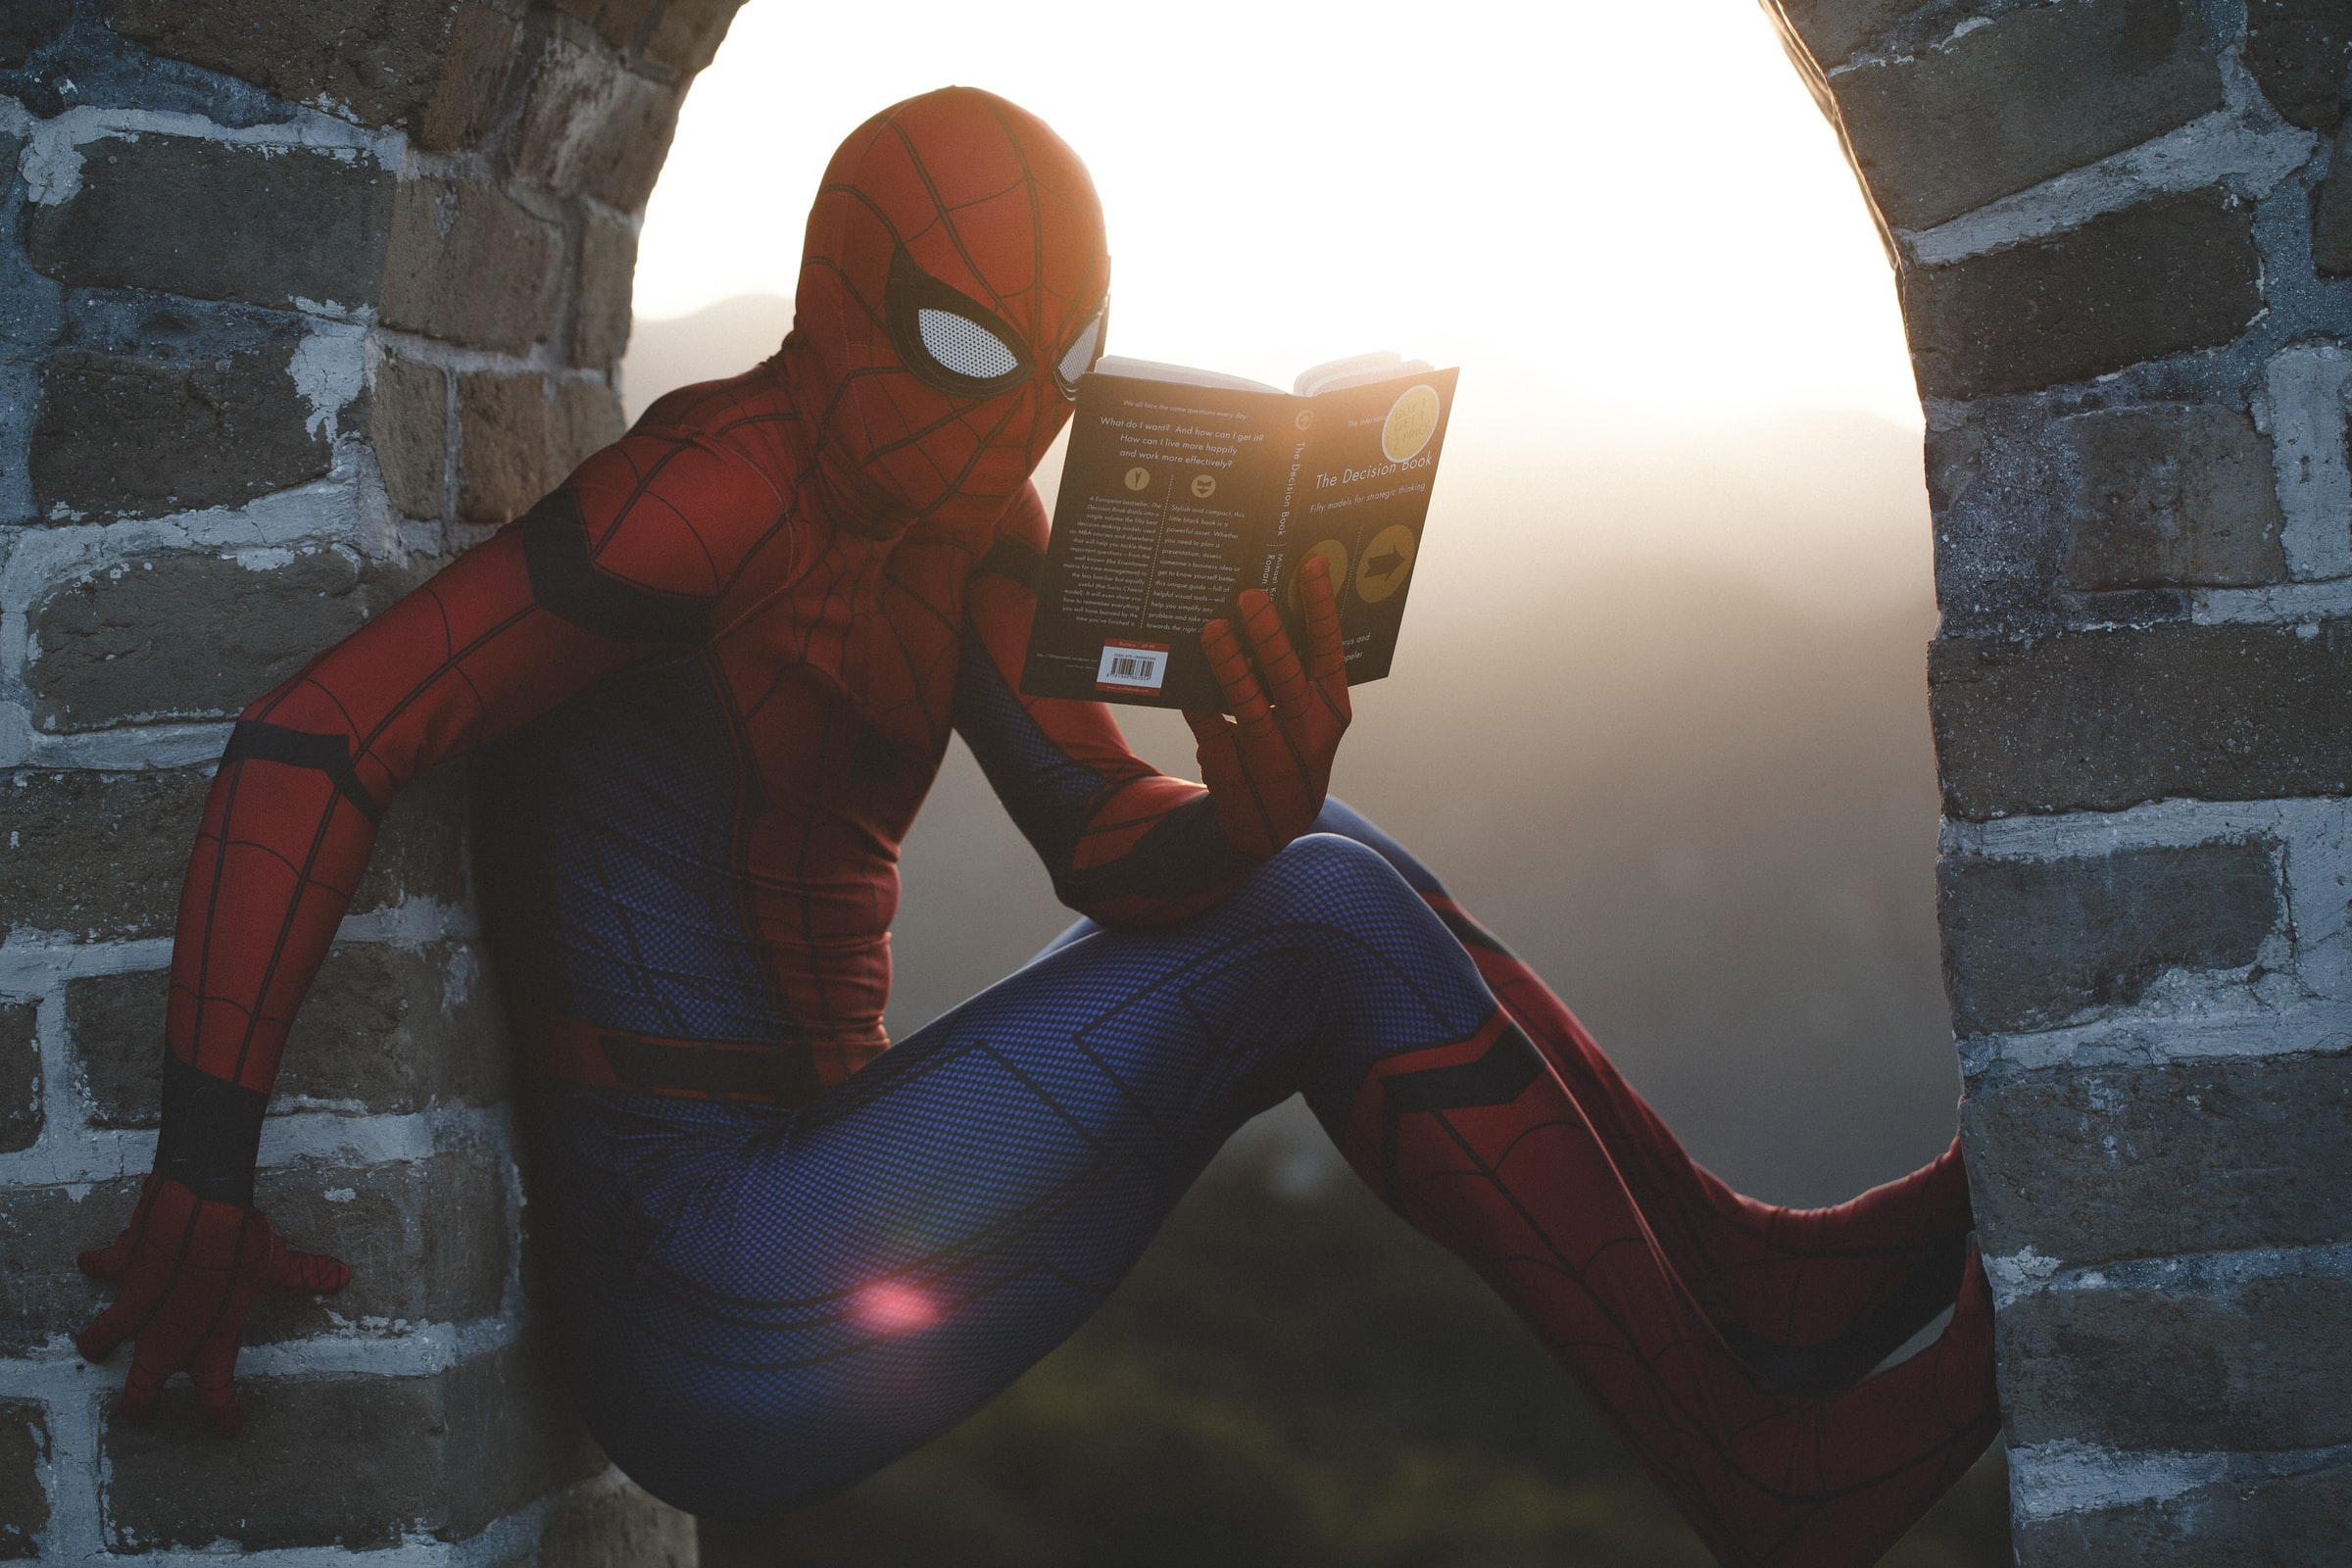 From The Past: The Amazing Spiderman With Andrew Garfield